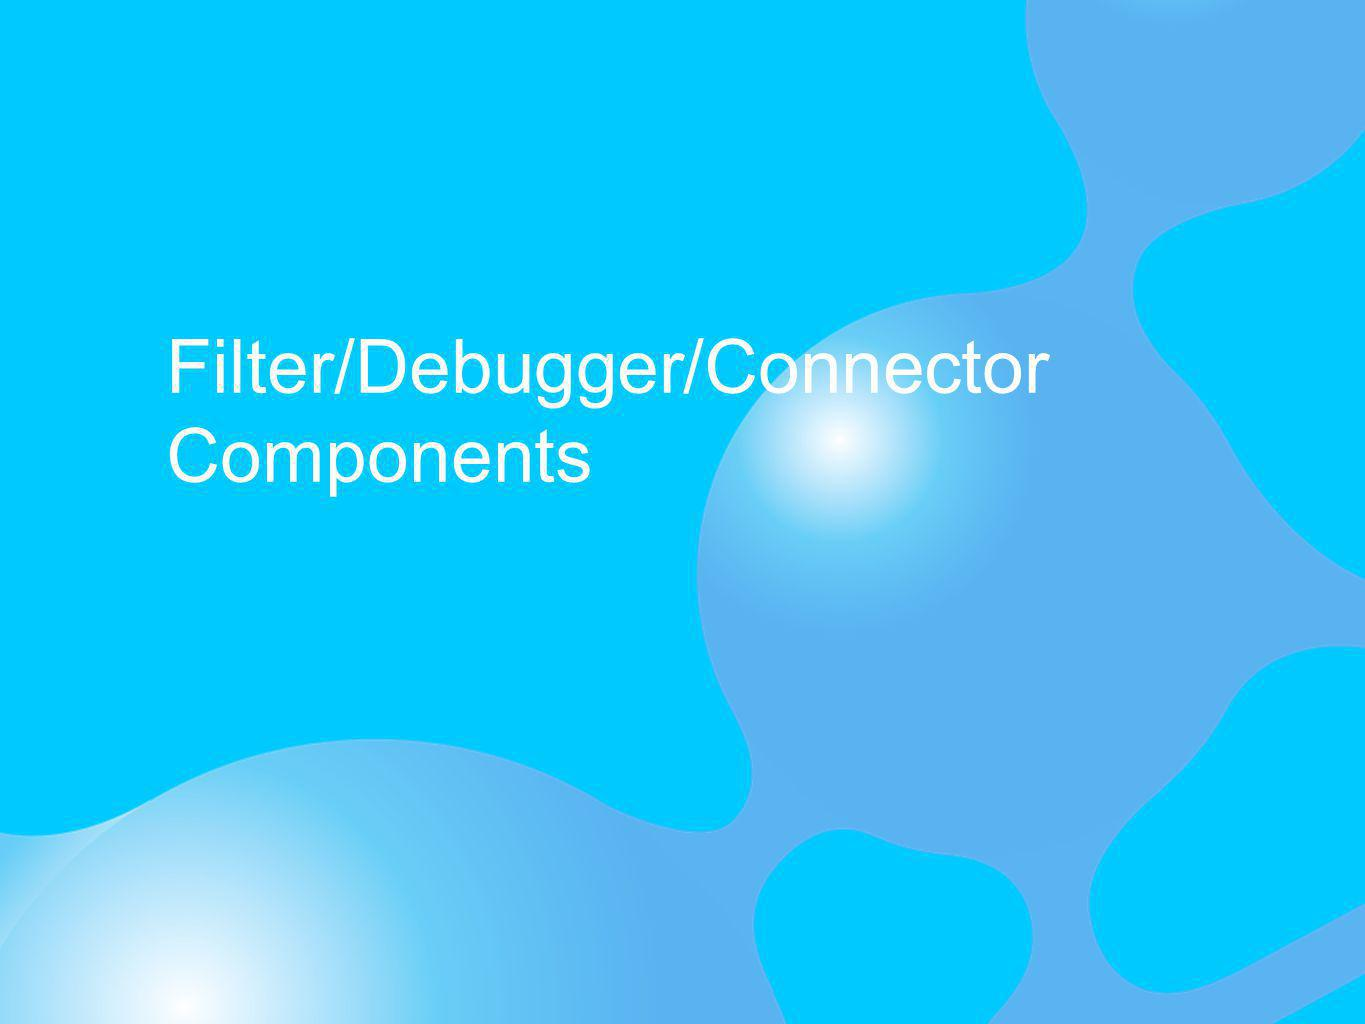 Filter/Debugger/Connector Components